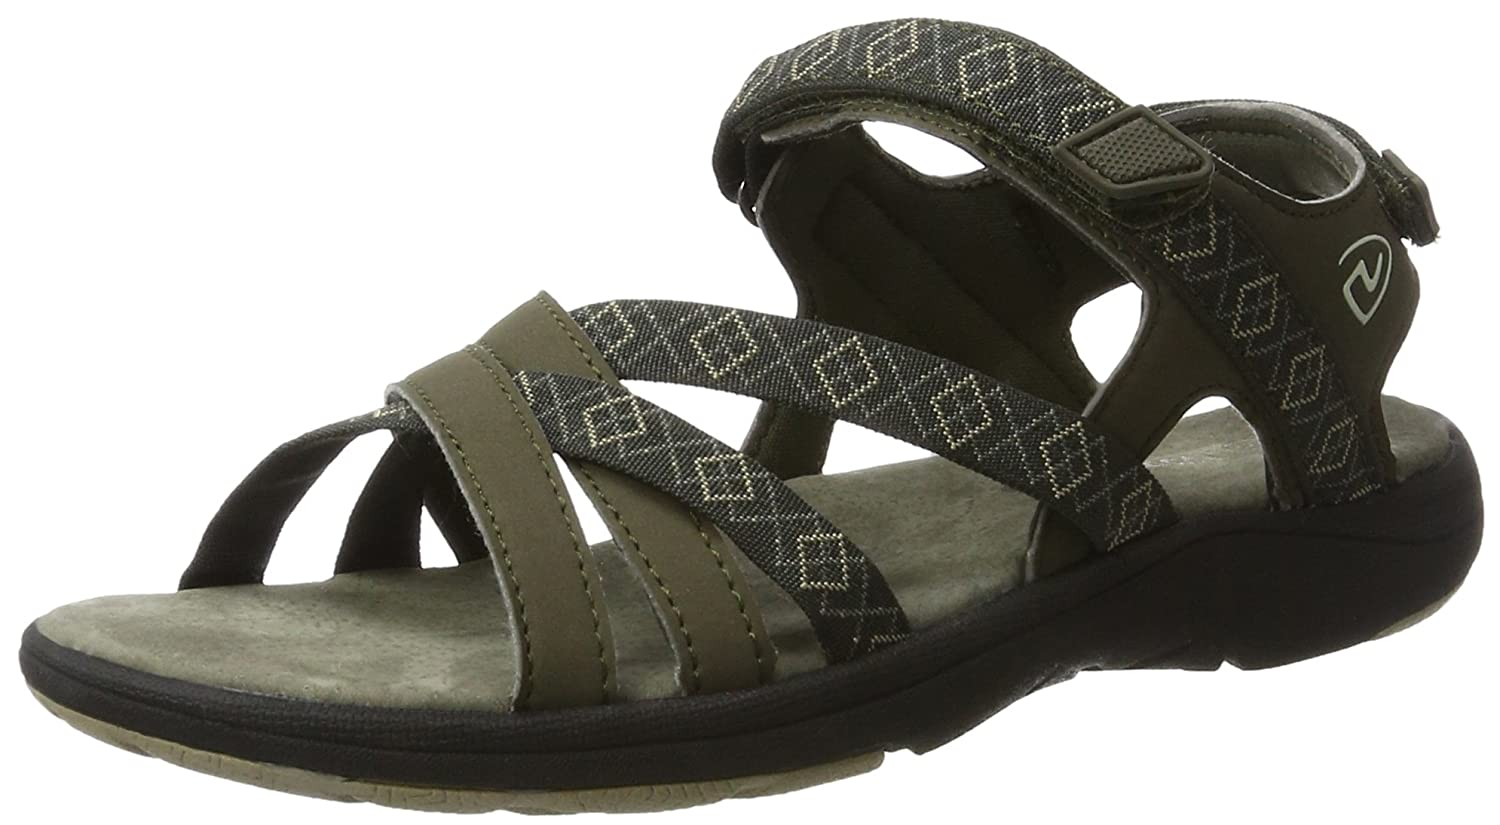 Northland Mia Leather Sandals, Sport Femme 02-08446